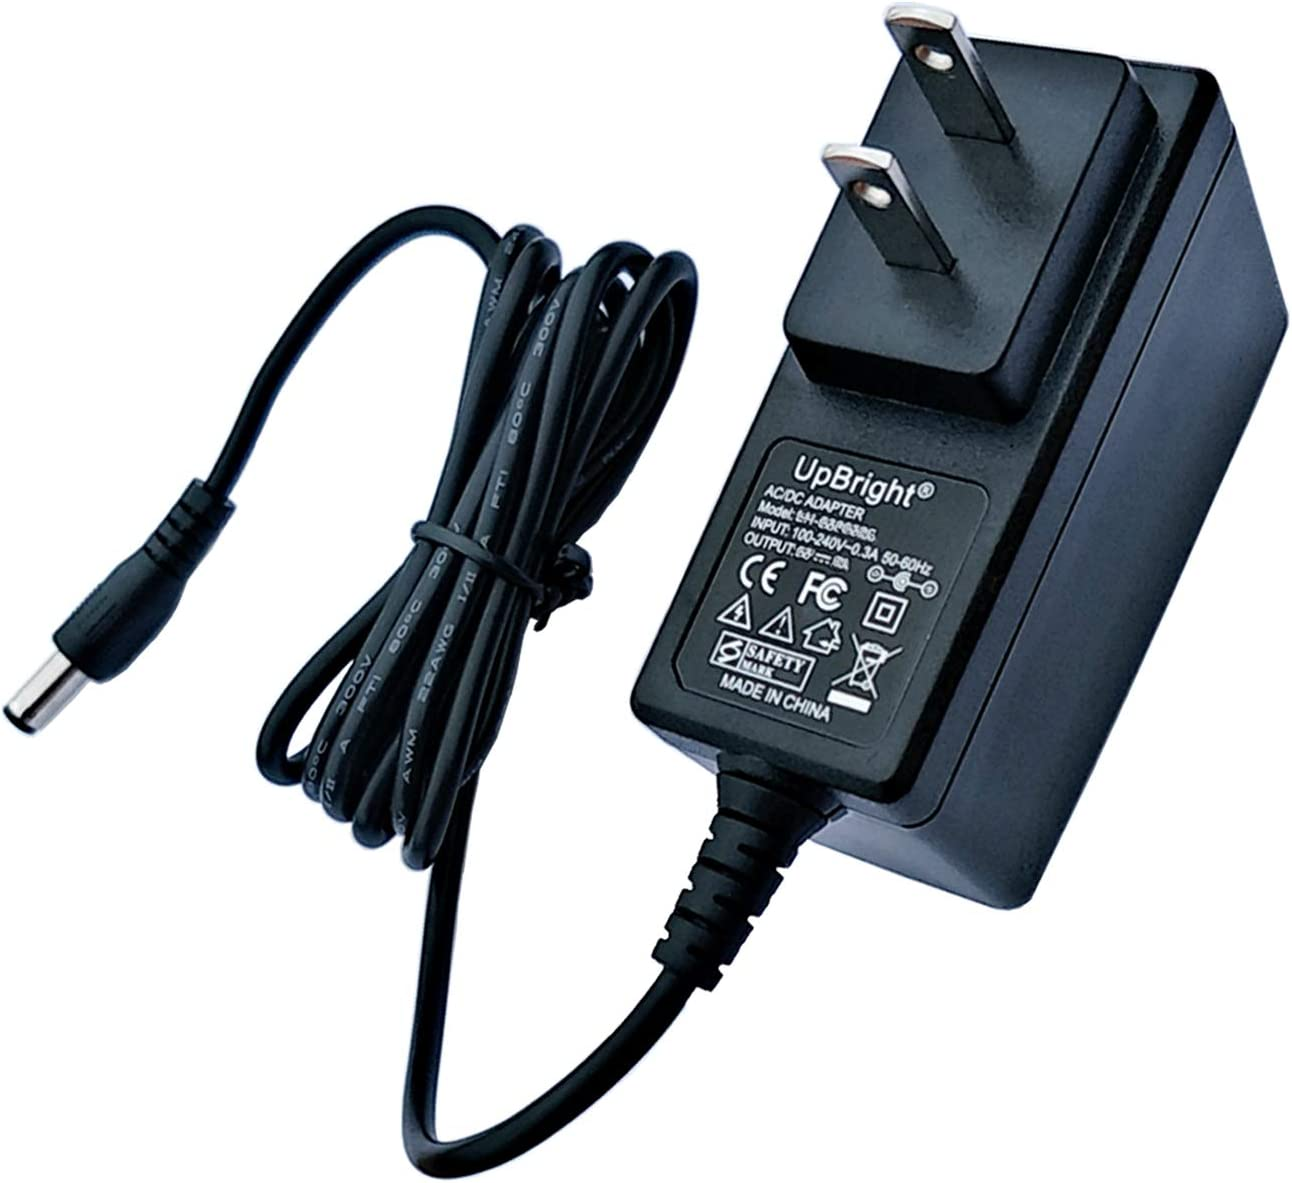 UpBright AC Adapter Compatible with Turbo Scrub 360 TS-MC6/3 TSDX-MO6 TSDX-M06 Cordless Floor Tile Scrubber TS MC 63 TSMC 6/3 DC 3.6V 1800mAh Battery RH-030 SW-059075A 5.9V 750mA Power Supply Charger